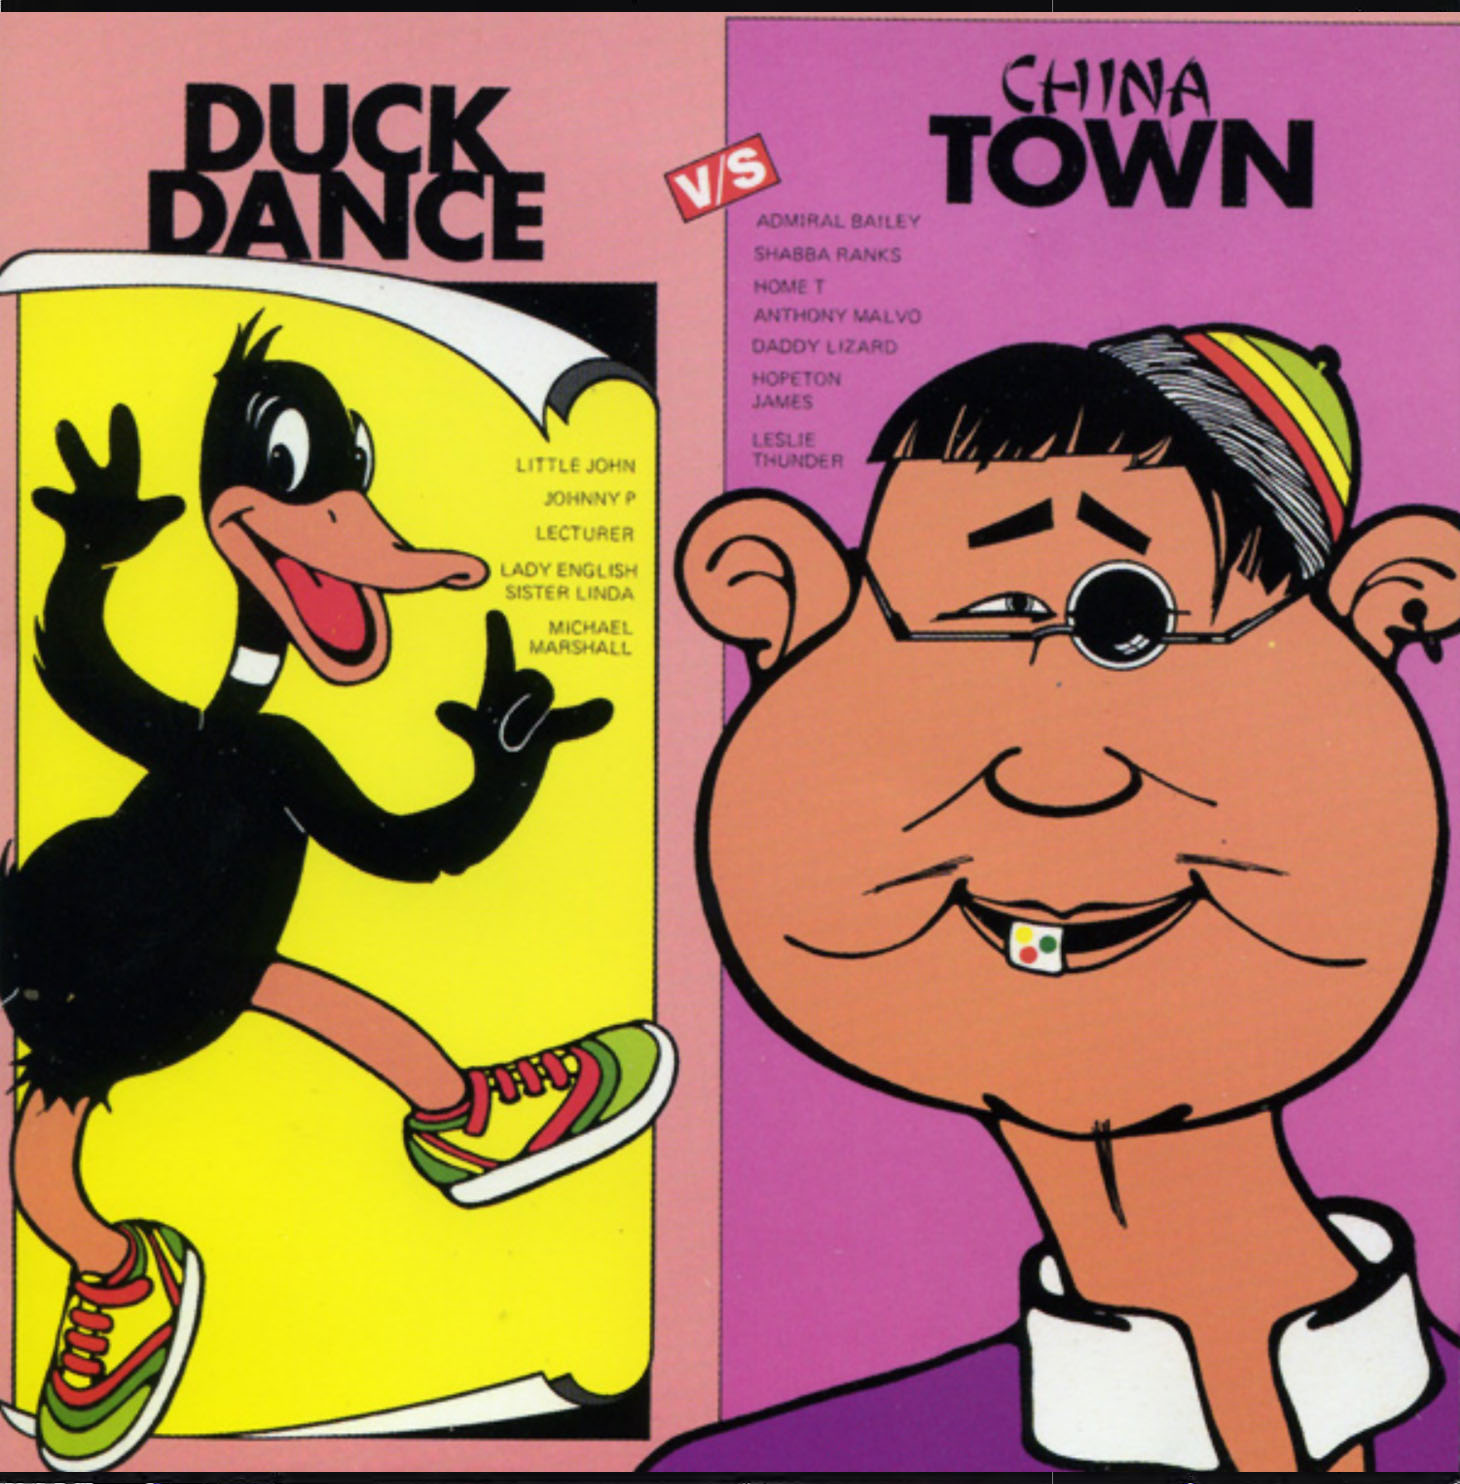 Duck Dance vs China Town – Duck Dance vs China Town